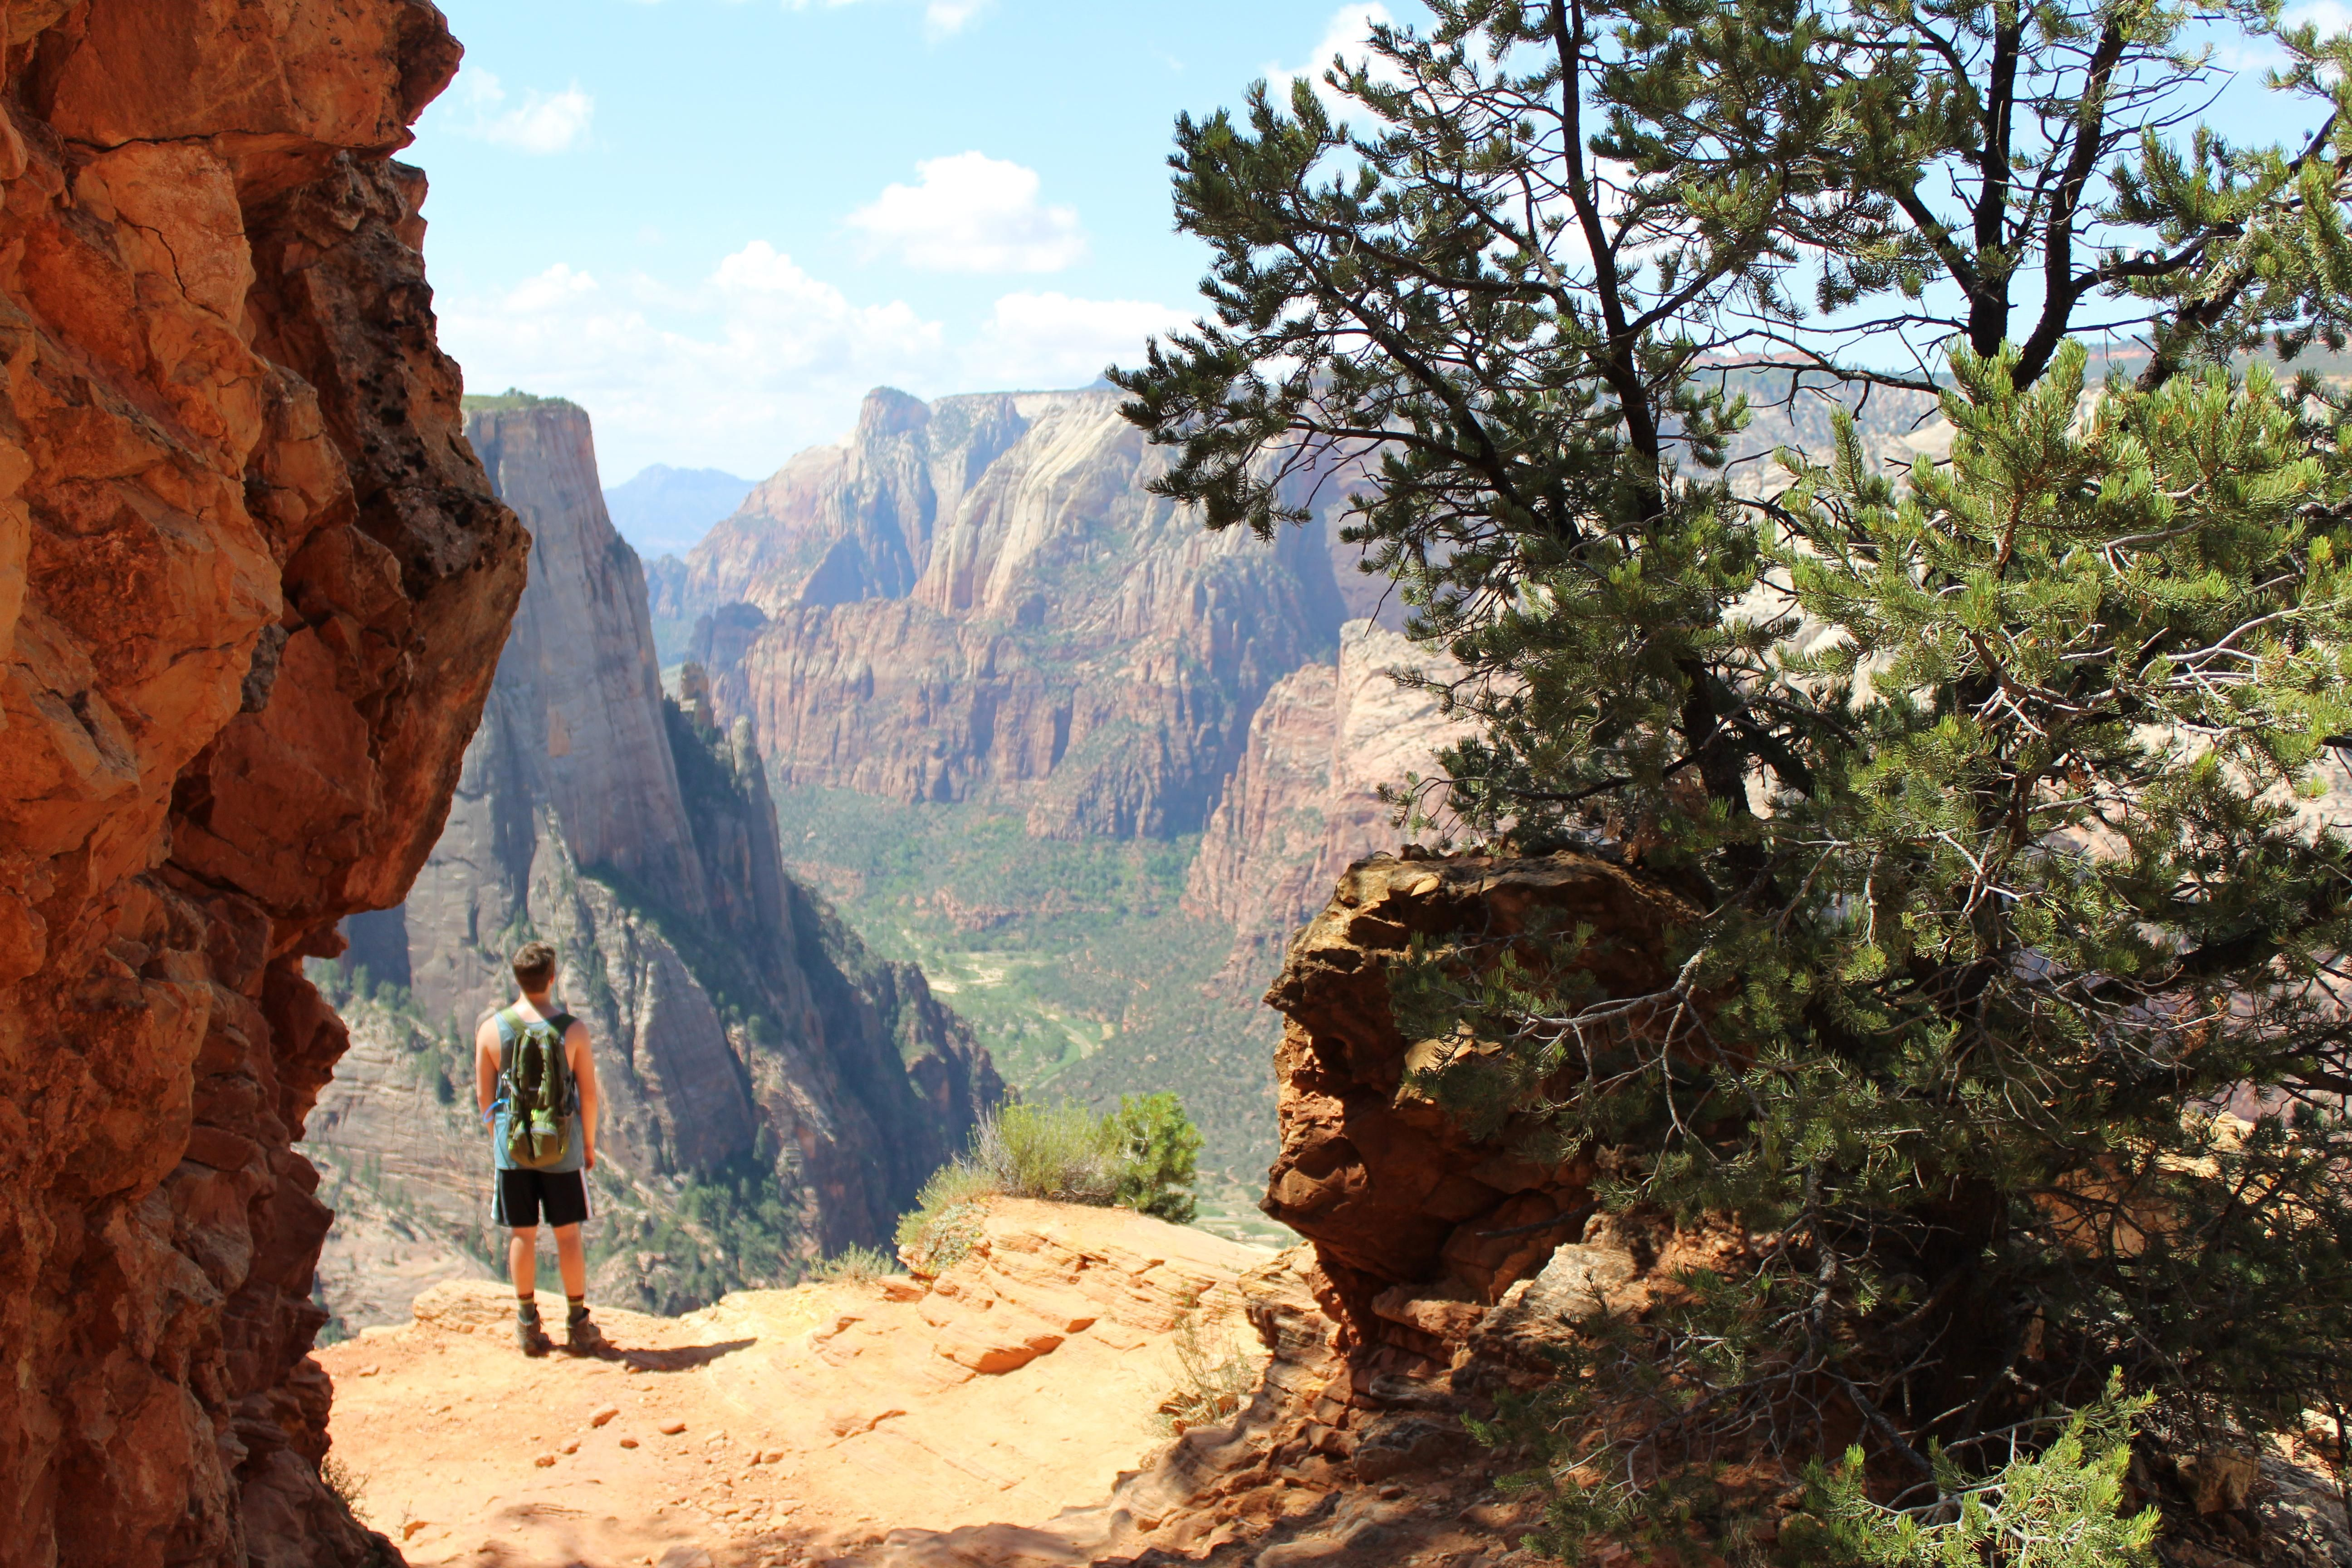 A Shot From My Hike Up To Observation Point In Zion National Park